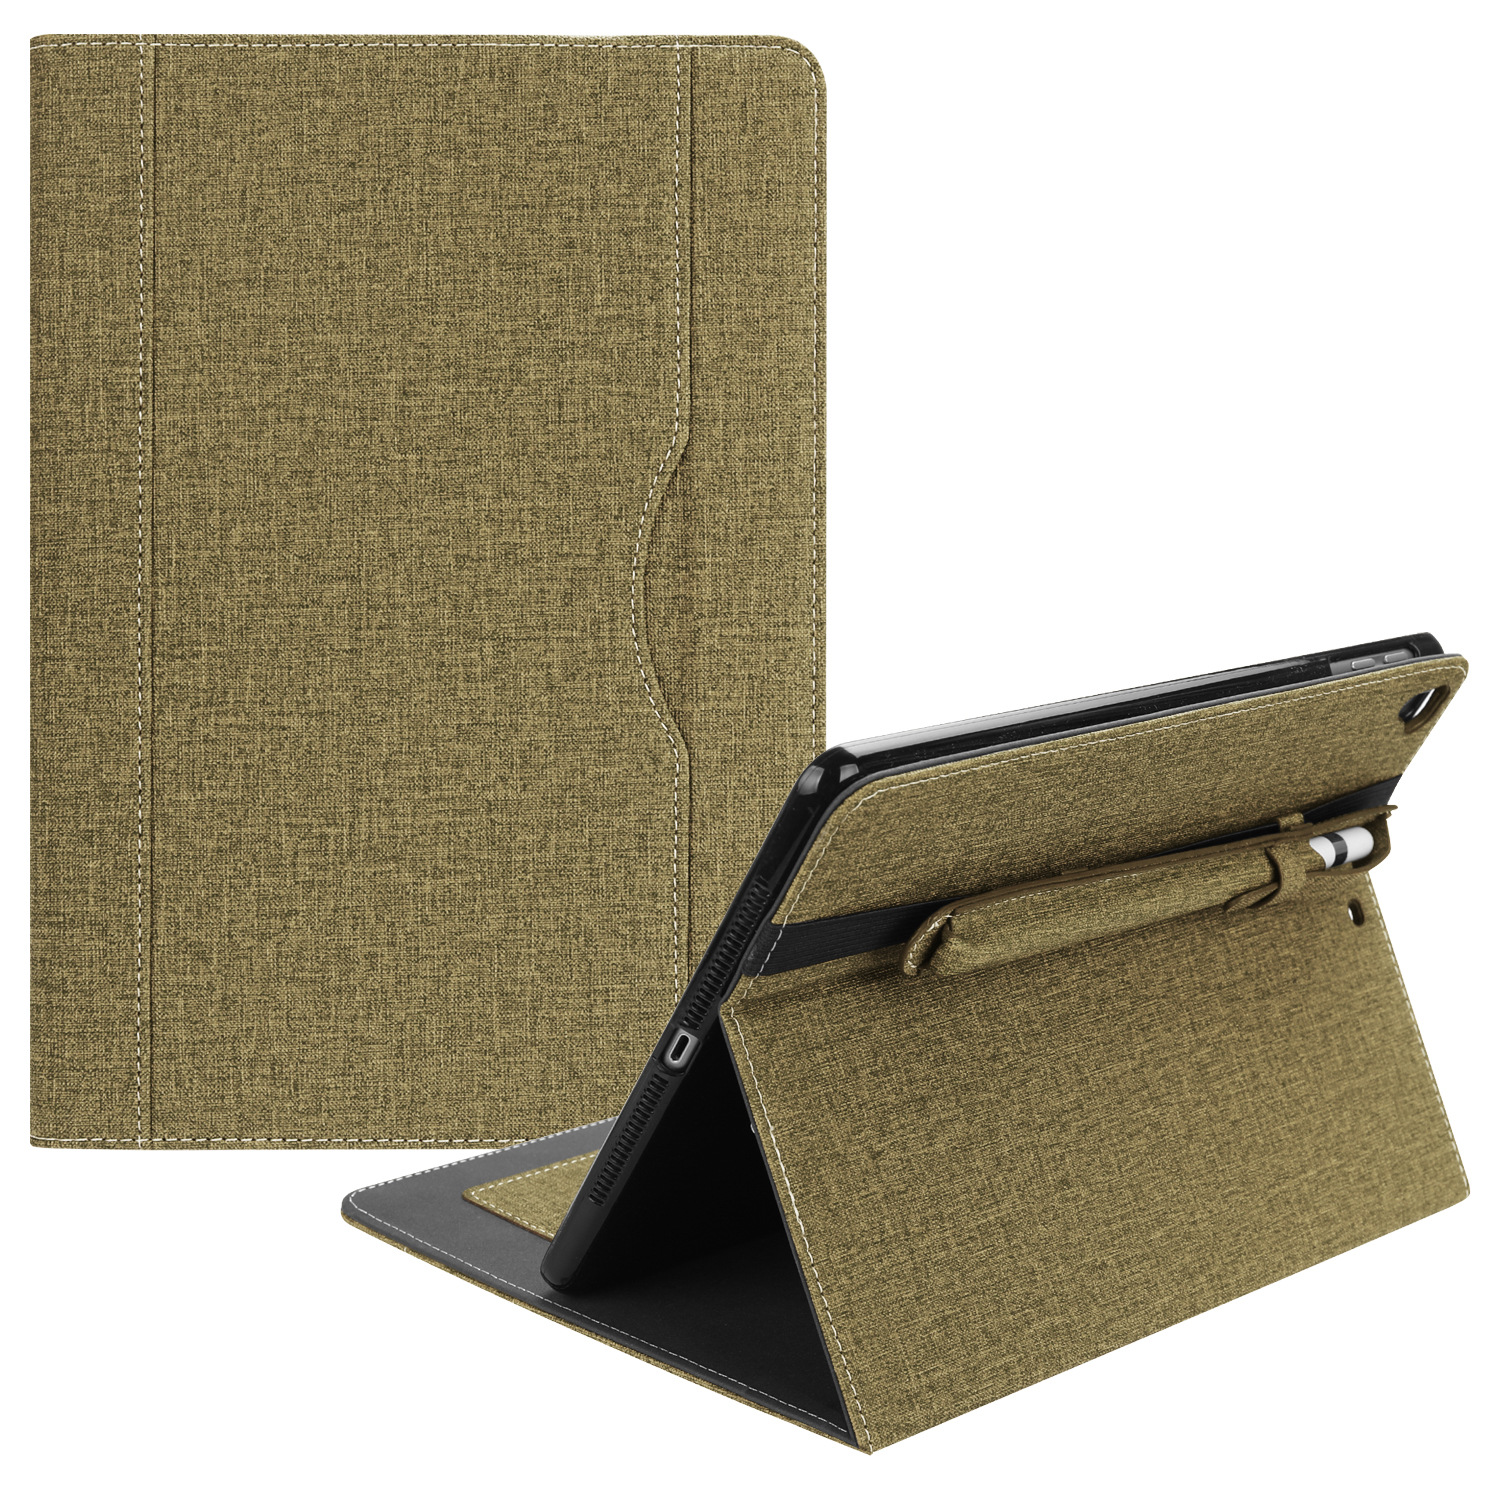 Business Canvas Tablet Case With Pencil Holder For iPad